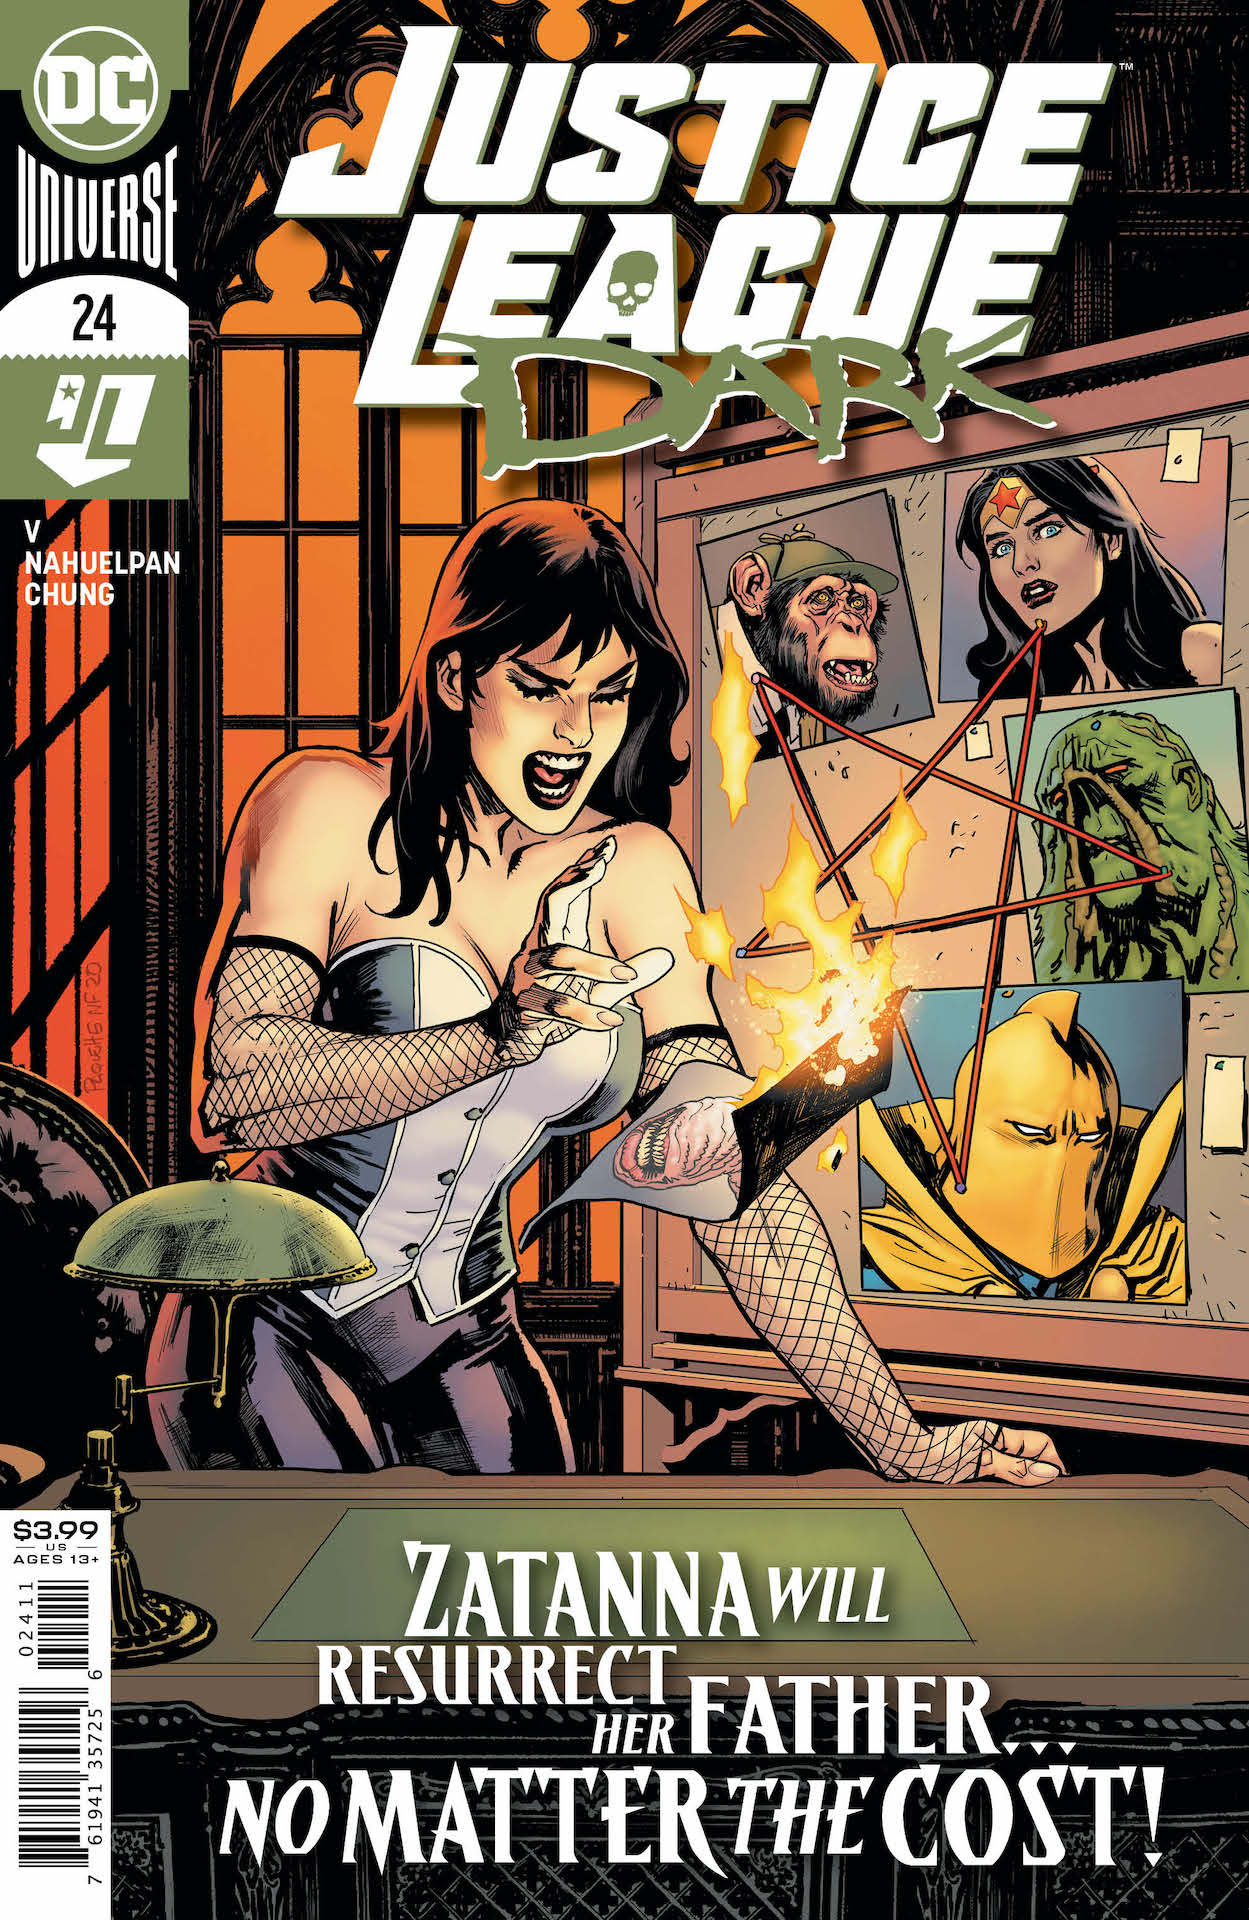 At last, Justice League Dark's mission reaches the moment fans have been waiting for: their descent into the Other Place...